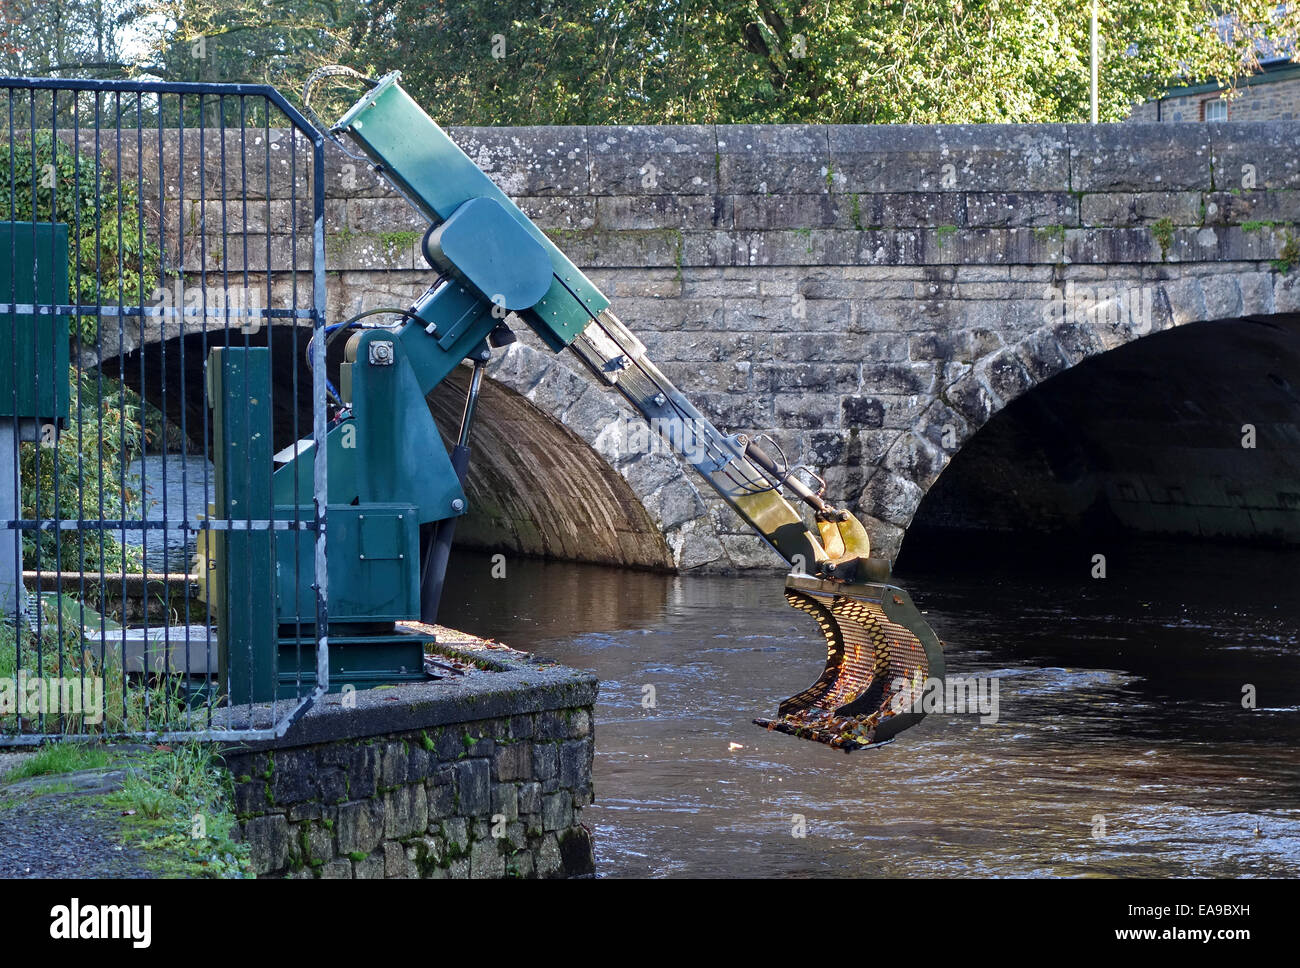 An Automatic Screening Mechanism to keep Salmon Smolts in the correct part of the River Tavy in Tavistock, Devon, - Stock Image